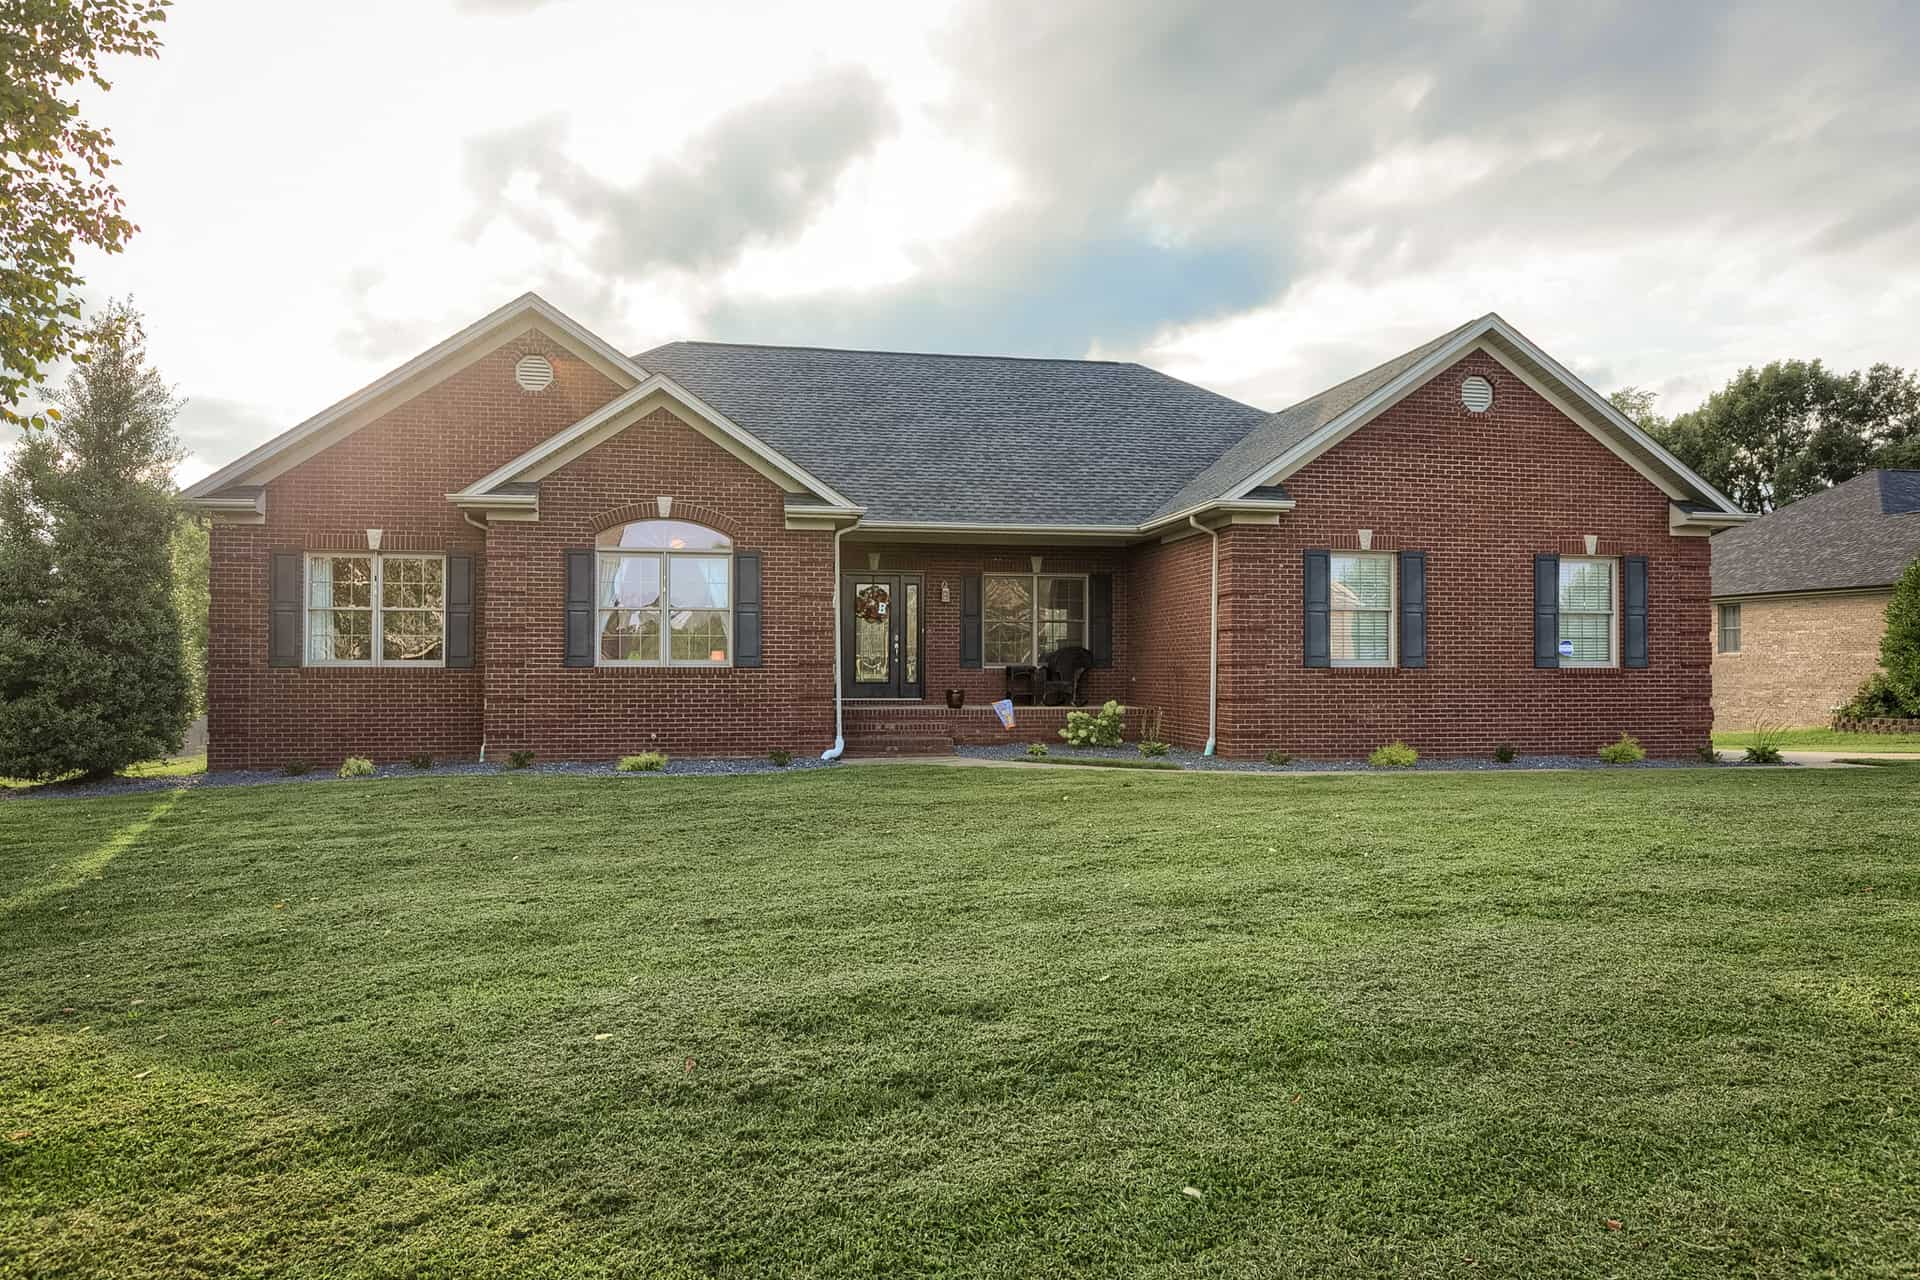 5250 Hillview Dr., Owensboro, KY 42303